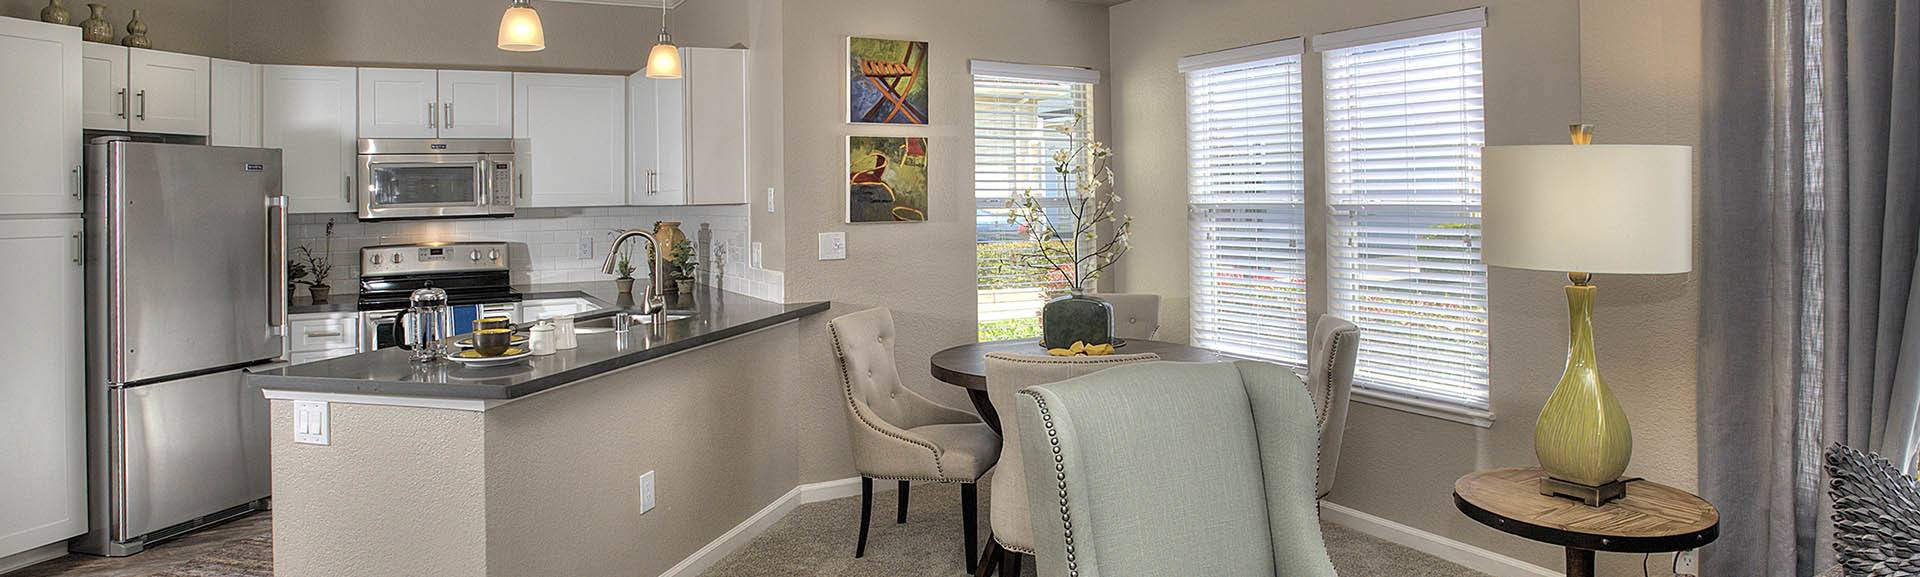 View our floor plans at Iron Point at Prairie Oaks on our website